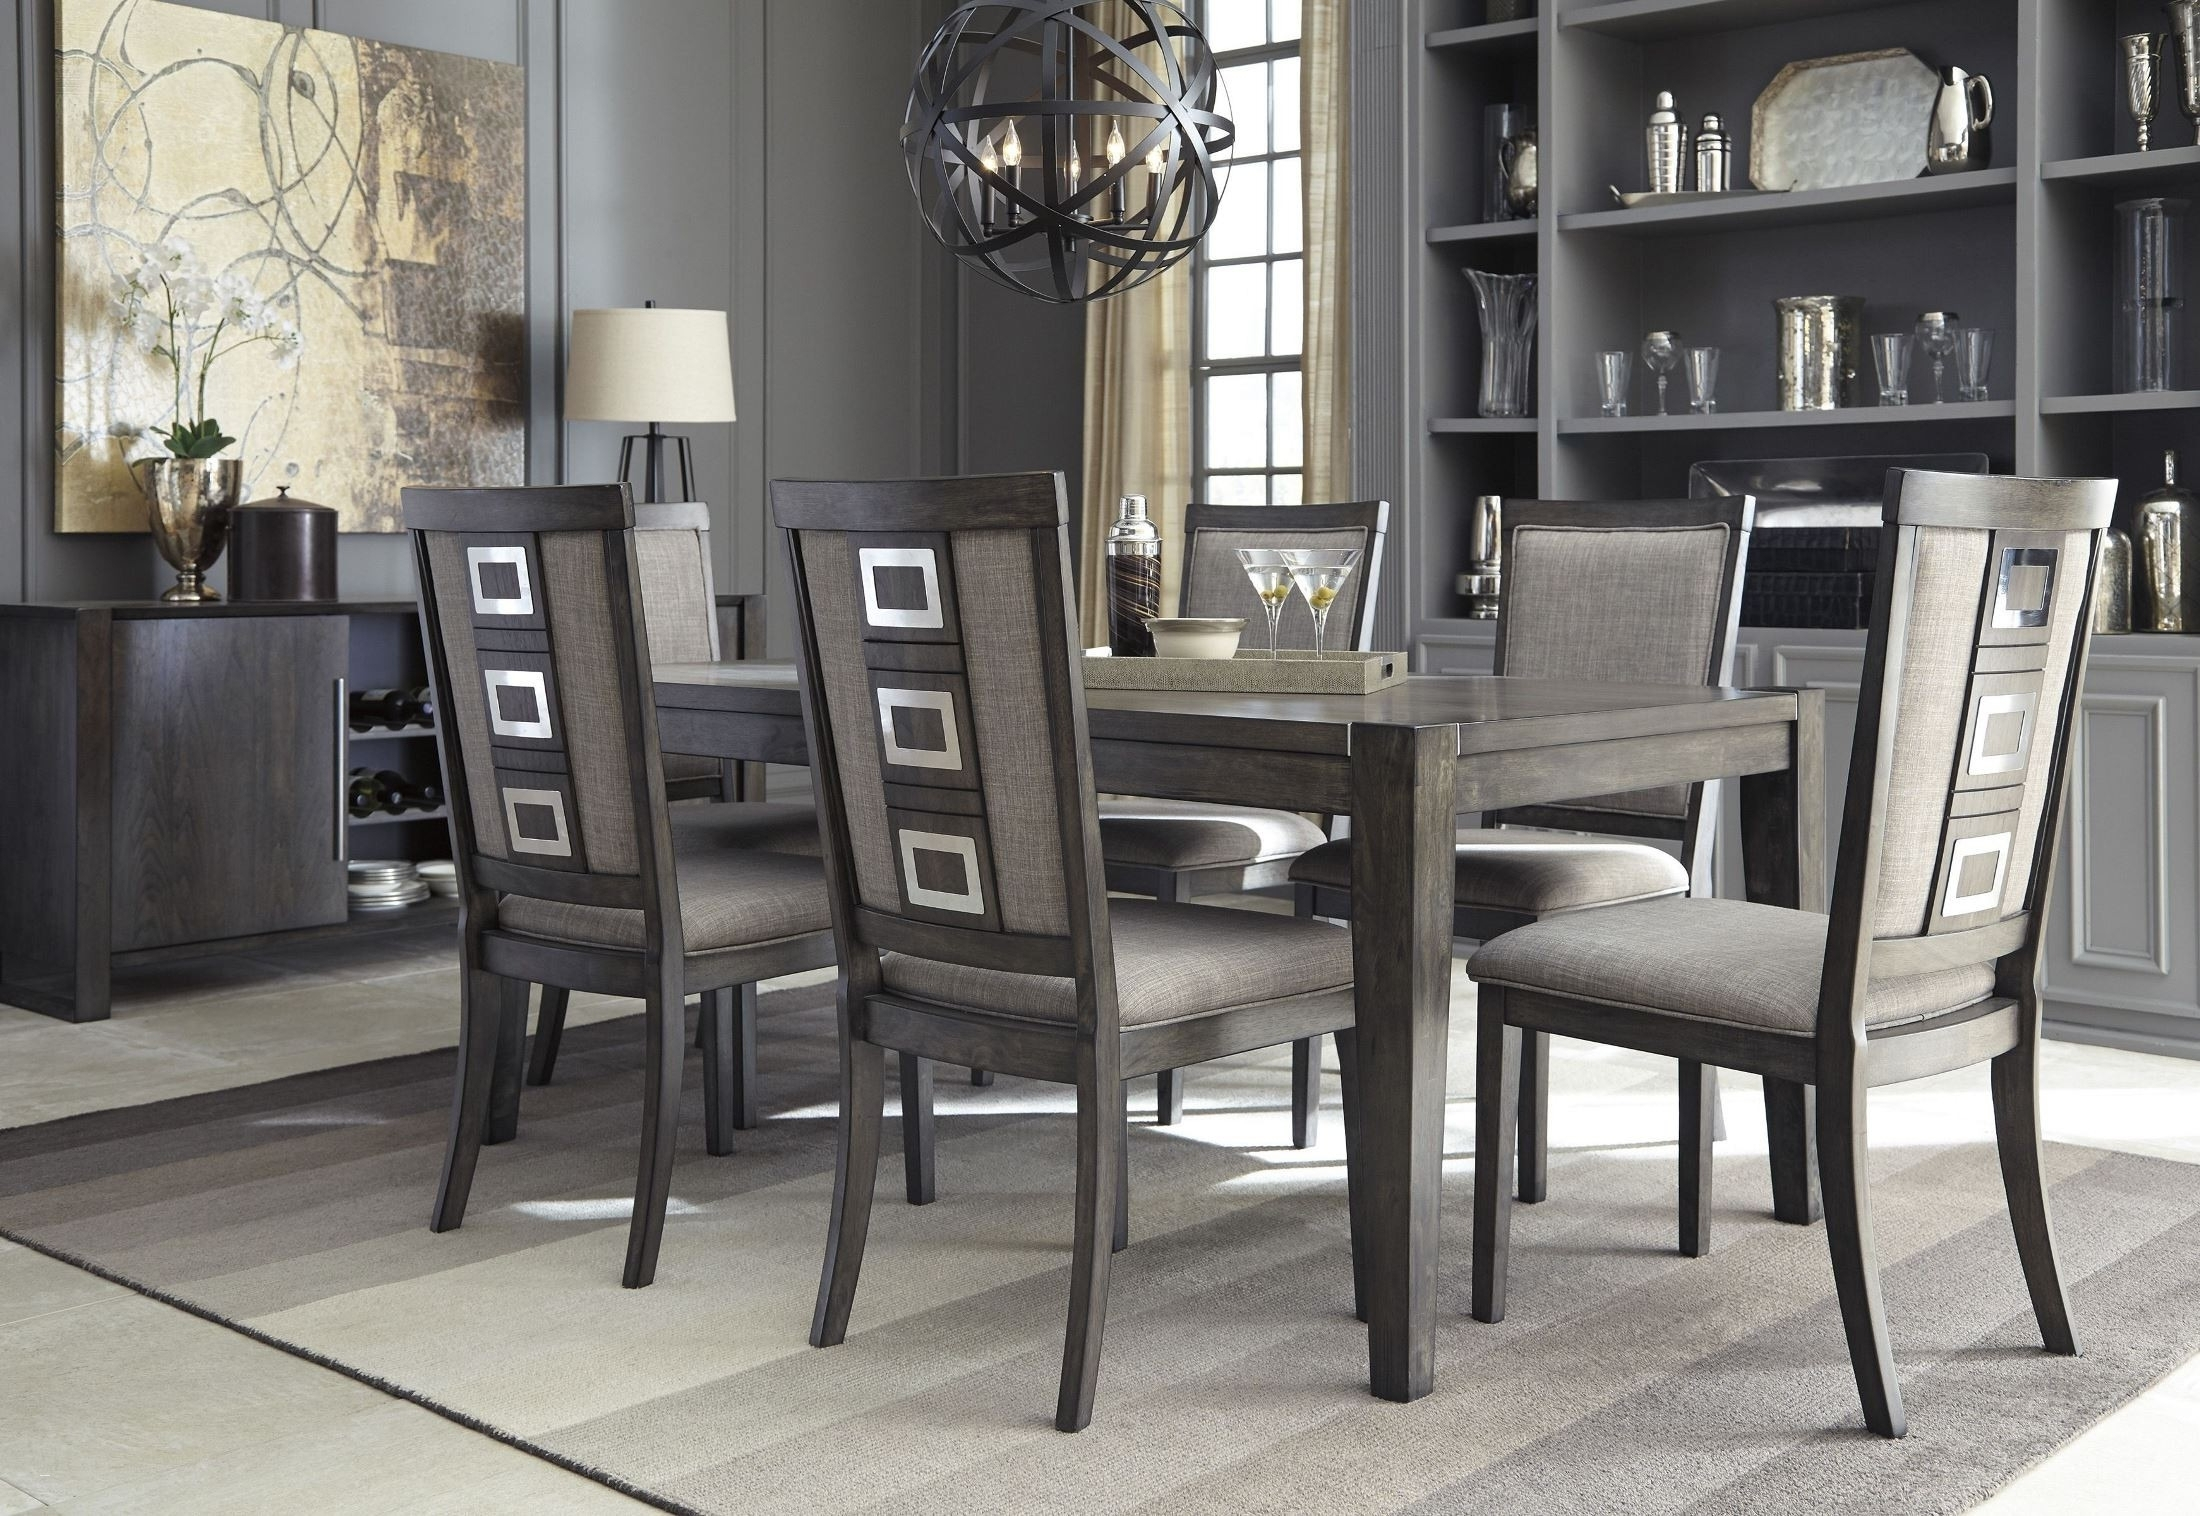 Coralayne Dining Room Set Fresh Cheap Dining Room Table Sets Regarding Most Recent Cora 7 Piece Dining Sets (Image 10 of 20)